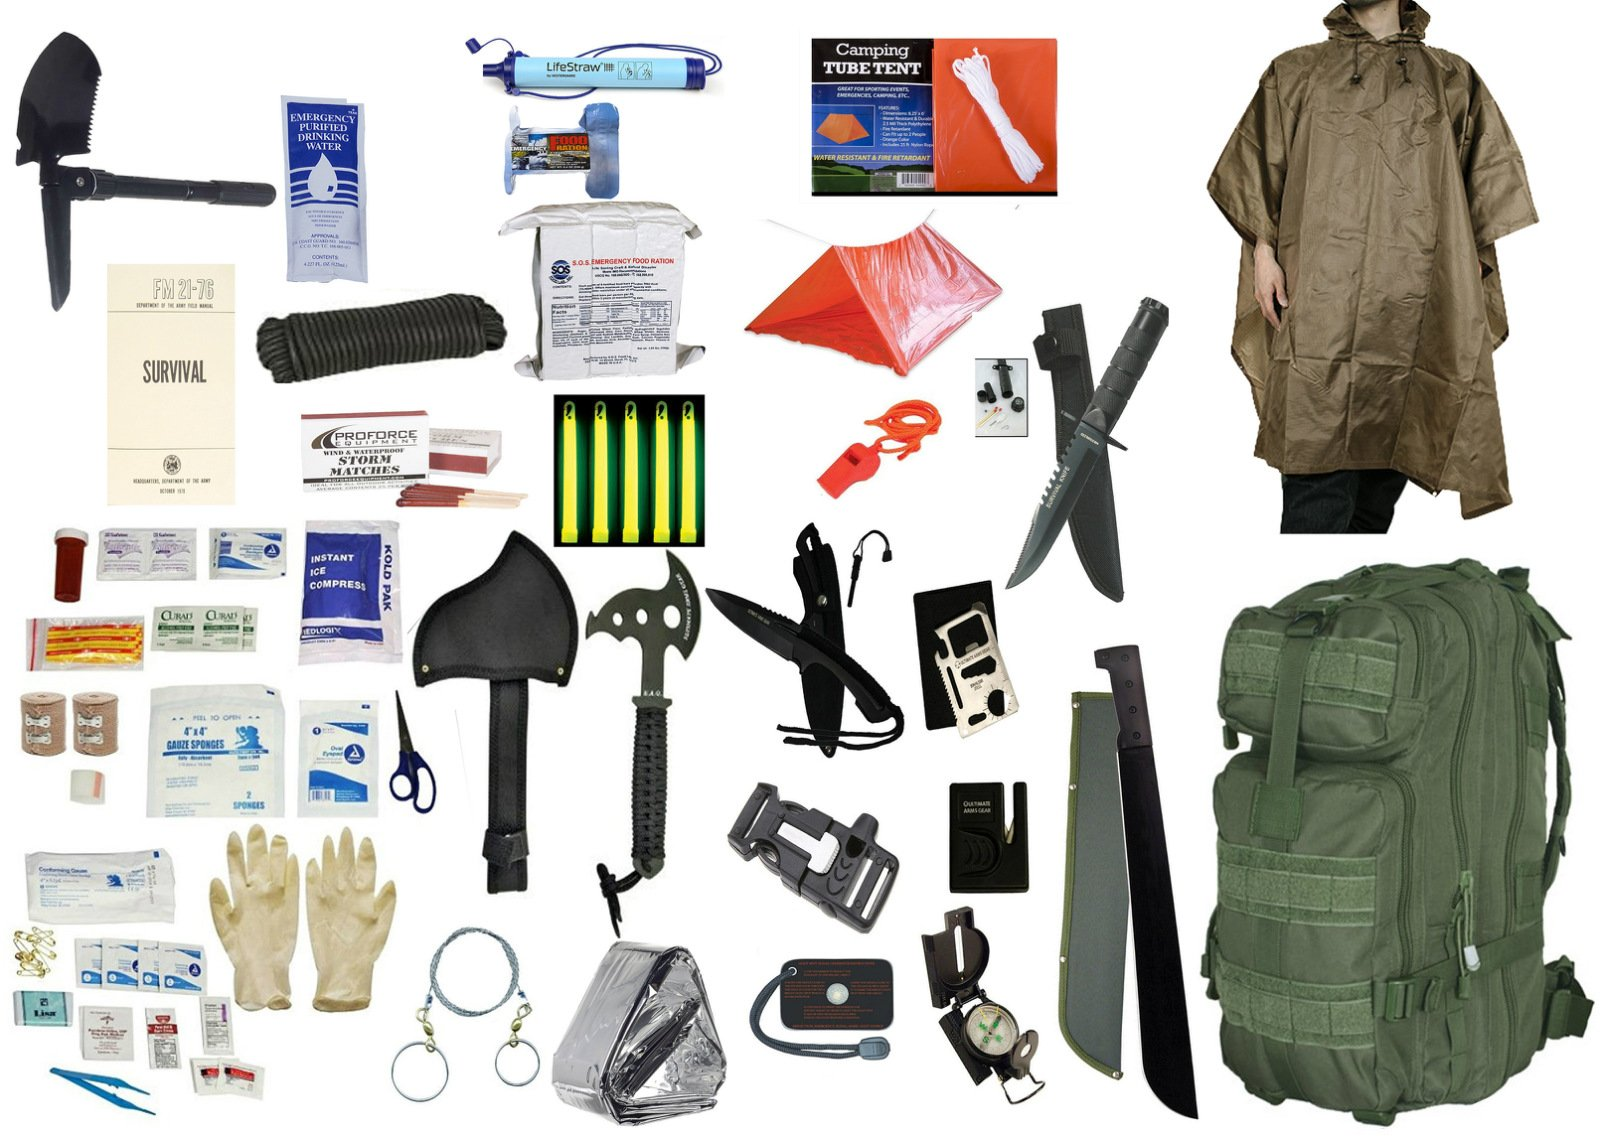 4 Person Supply 3 Day Emergency Bug Out S.O.S. Food Rations, Drinking Water, LifeStraw Personal Filter, First Aid Kit, Tent, Blanket, OD Backpack, Tan Poncho + Essential 21 Piece Survival Gear Set